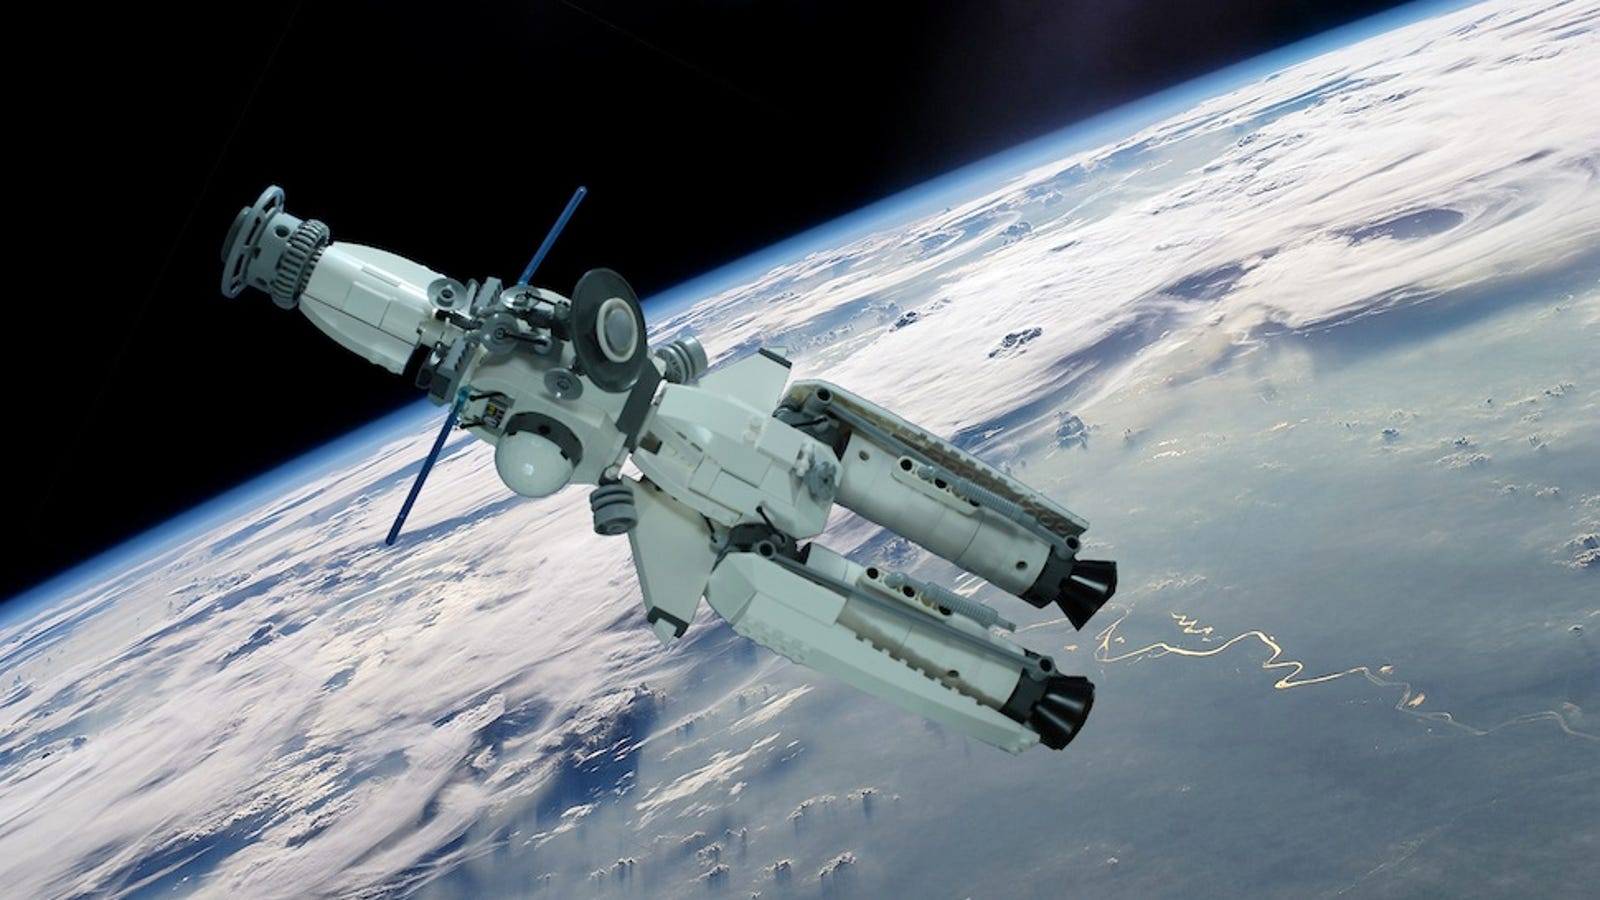 Are These Lego Designs The Future Of Aerospace Engineering